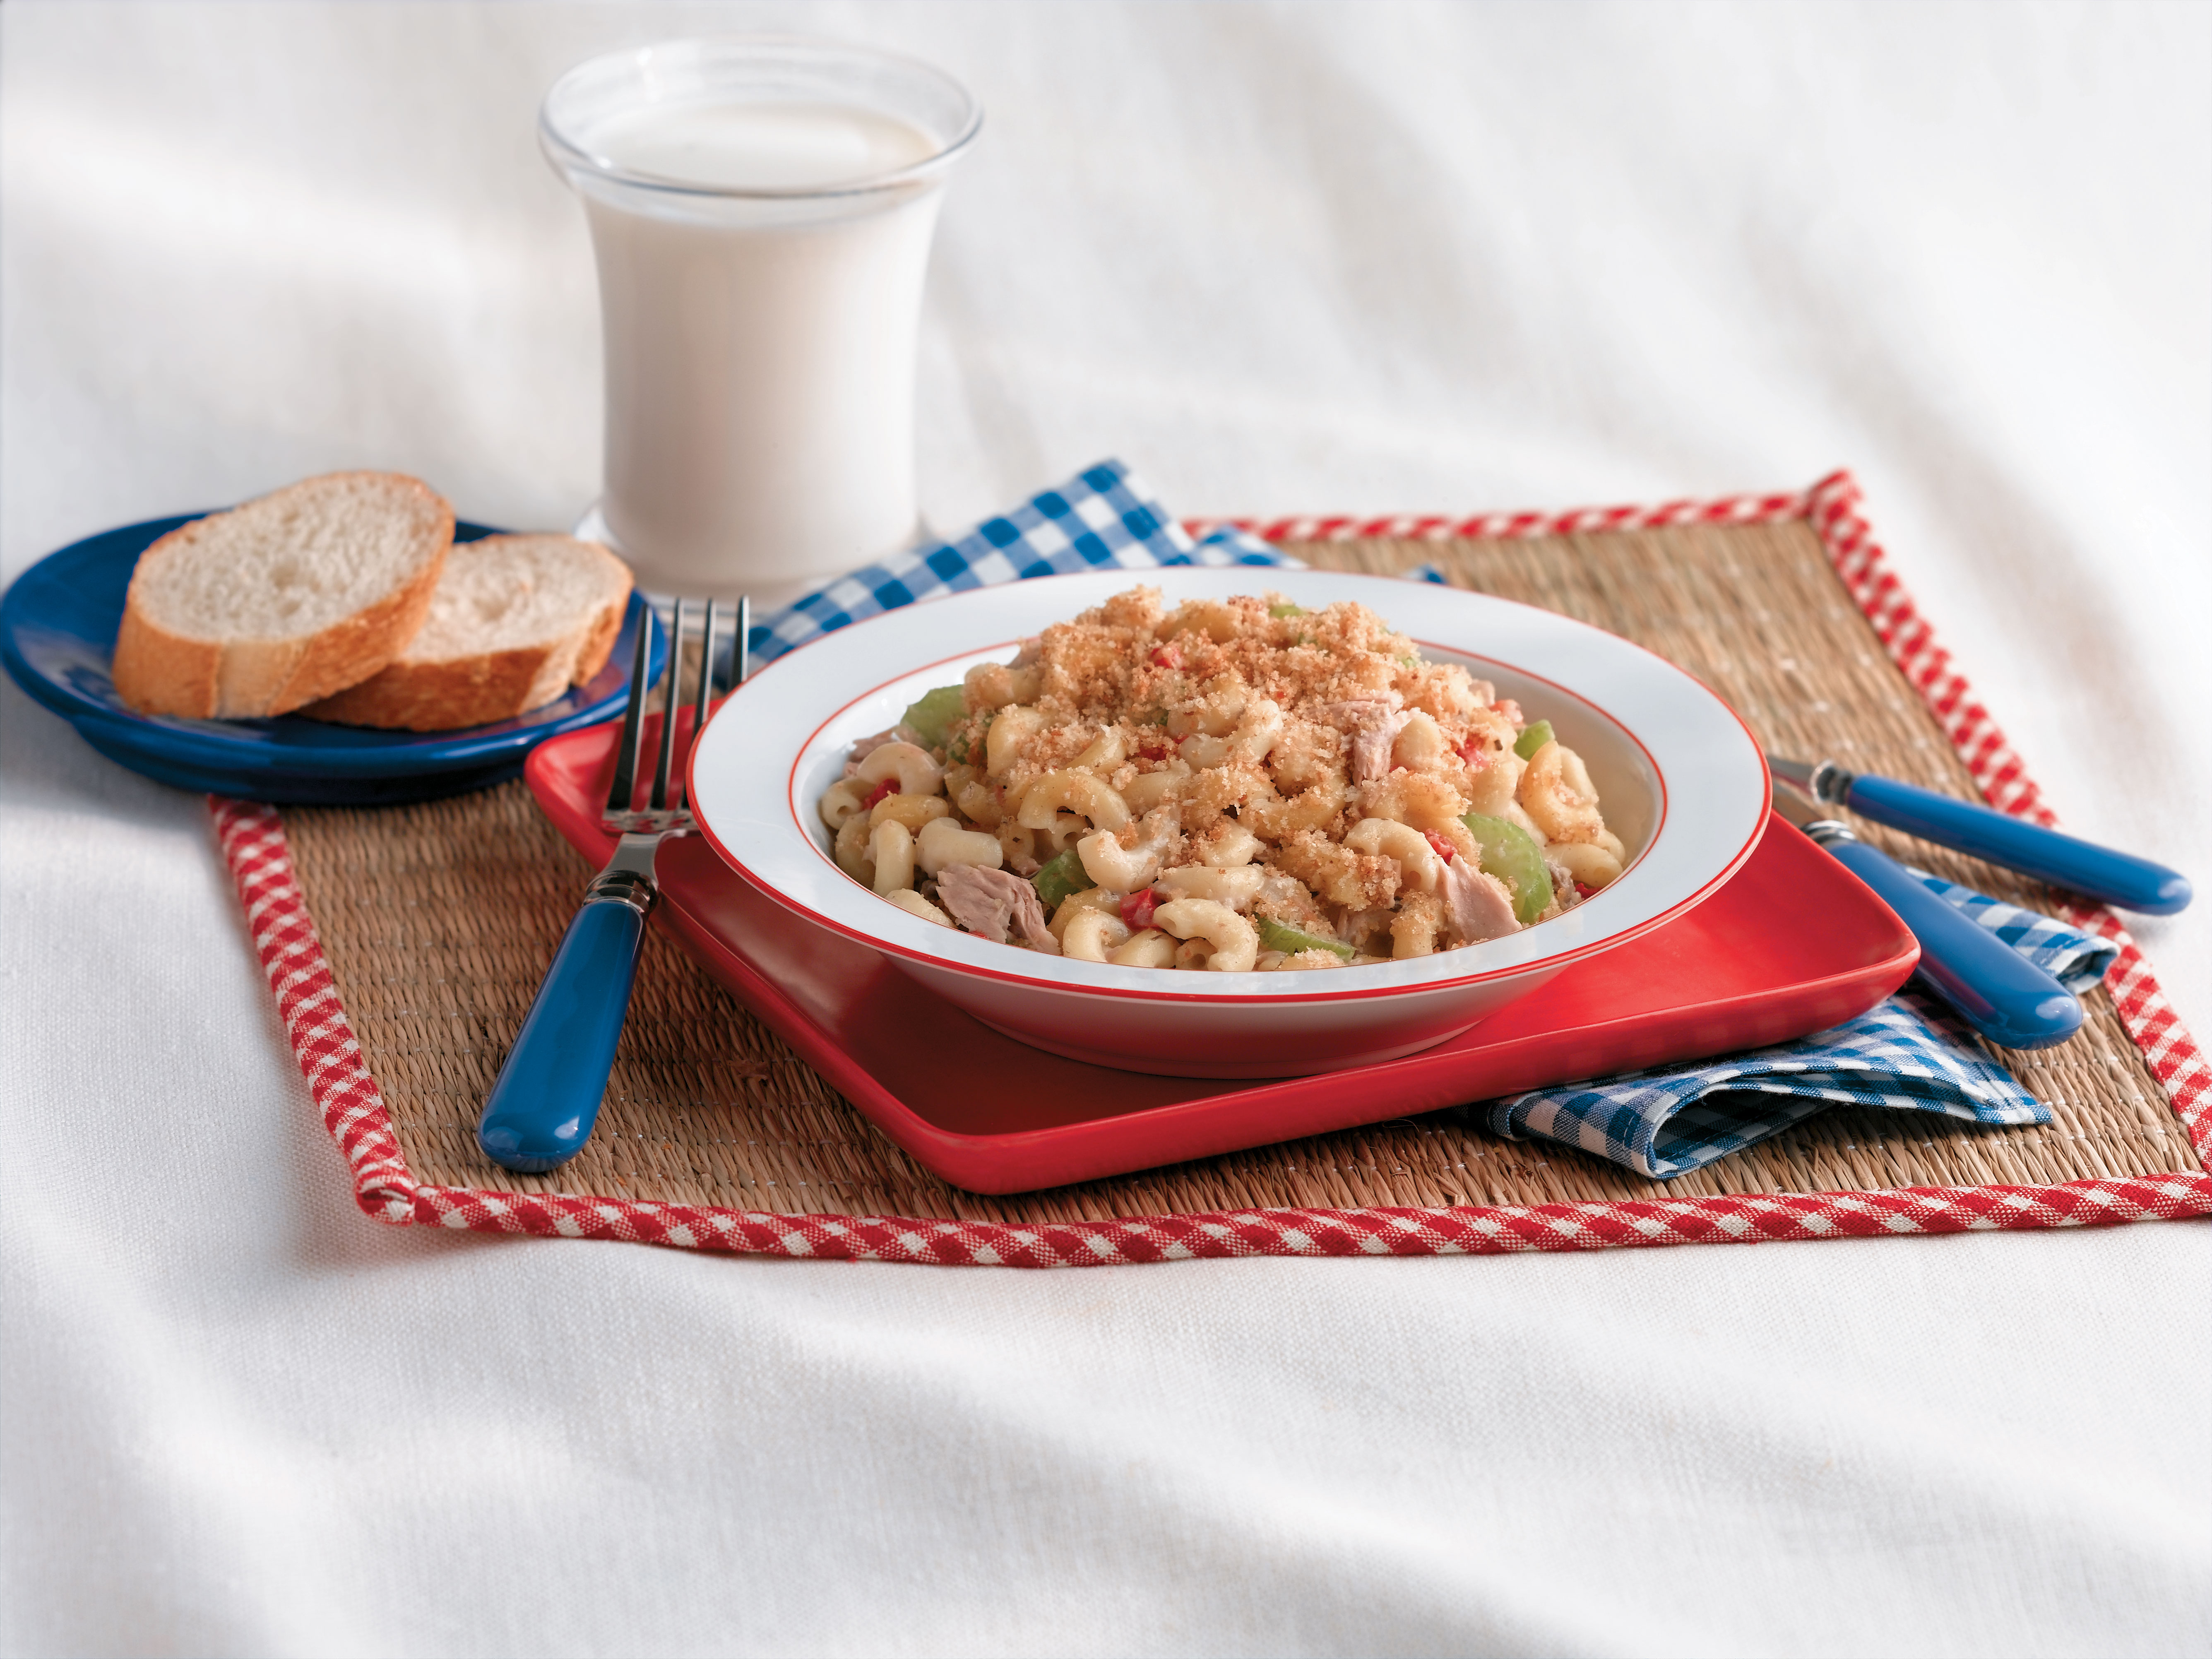 Picnic macaroni salad with elbows, celery, and green peppers, topped with bread crumbs